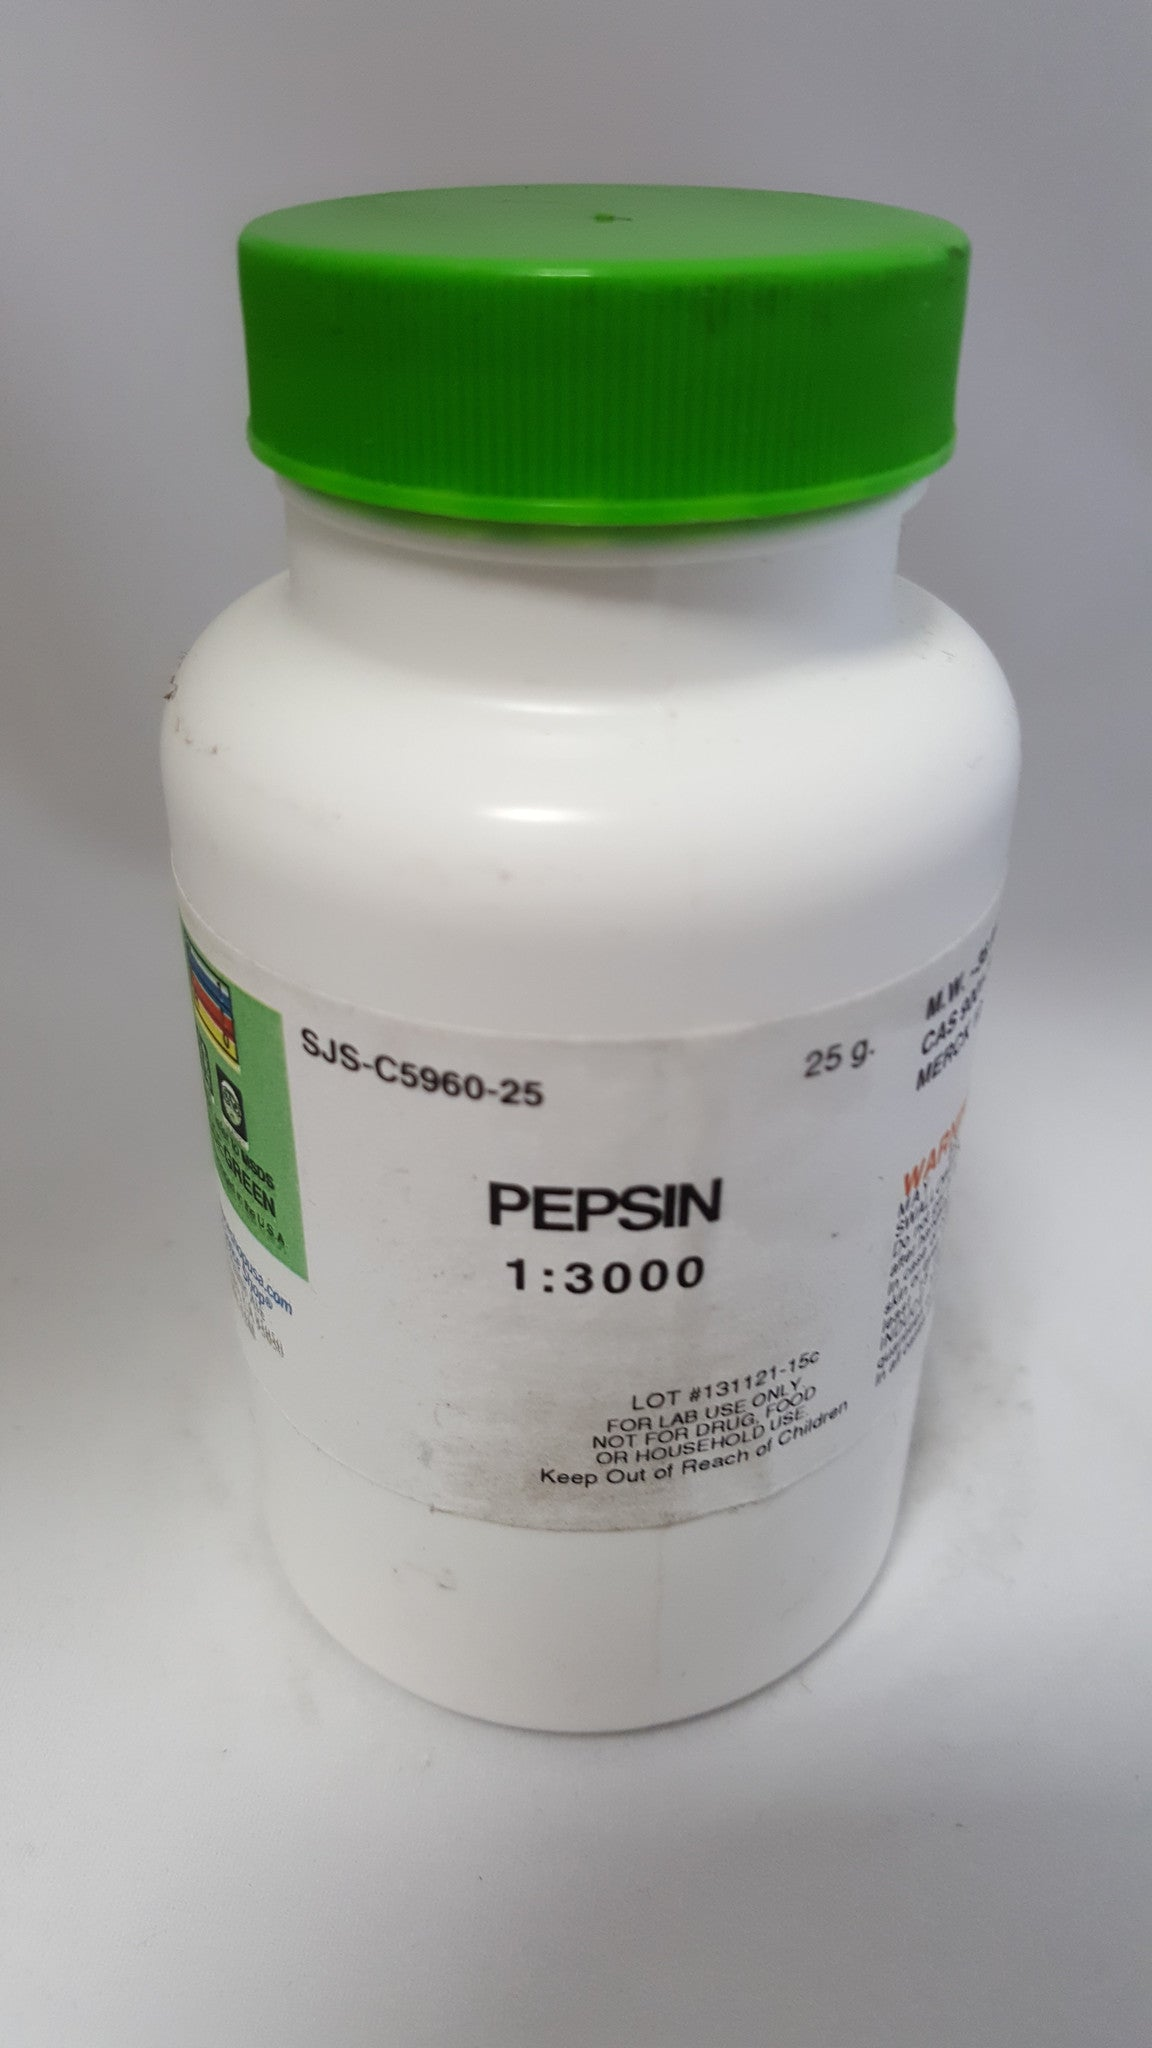 PEPSIN 1:3000 25G - The Science Shop